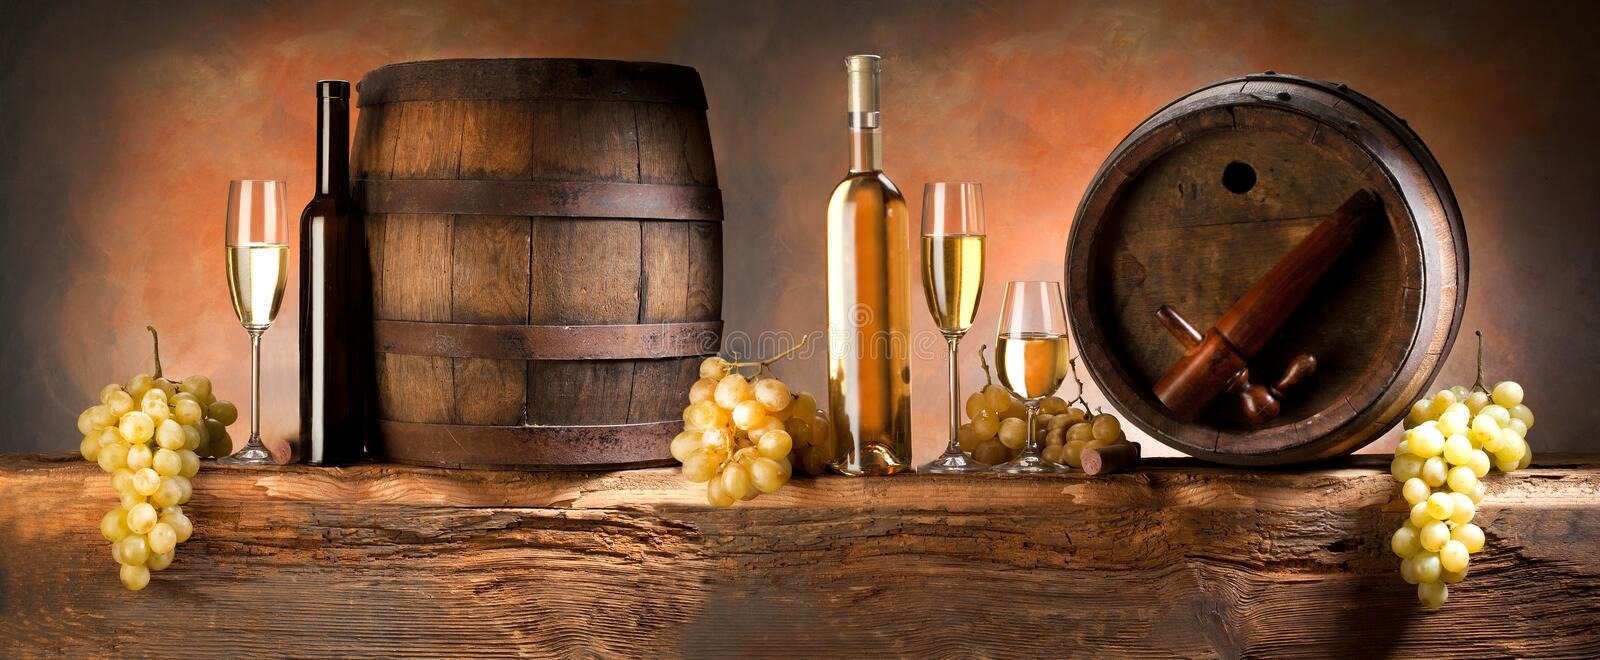 Download Wine composition stock photo. Image of shine, barrel - 22455096